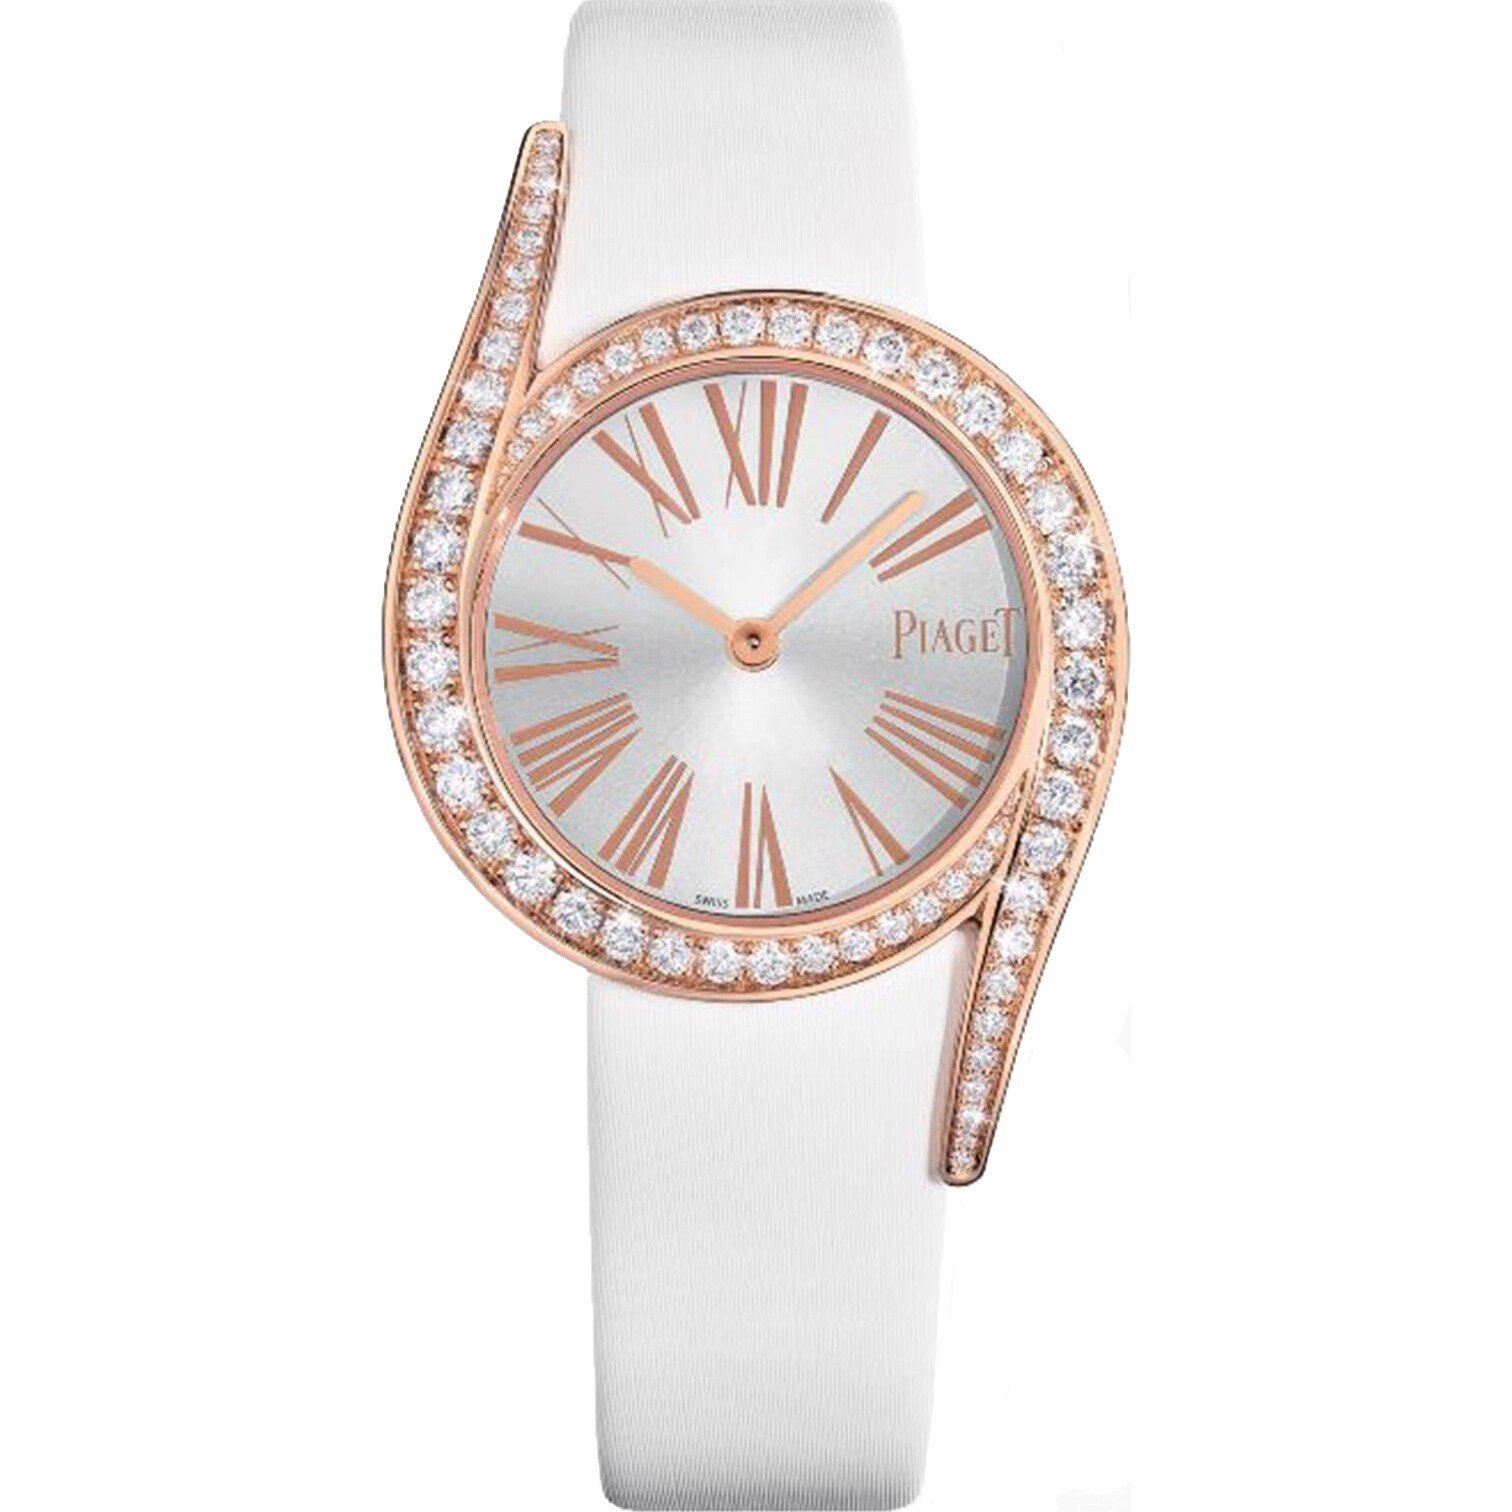 Piaget Limelight Gala G0a42151 Watch 26mm